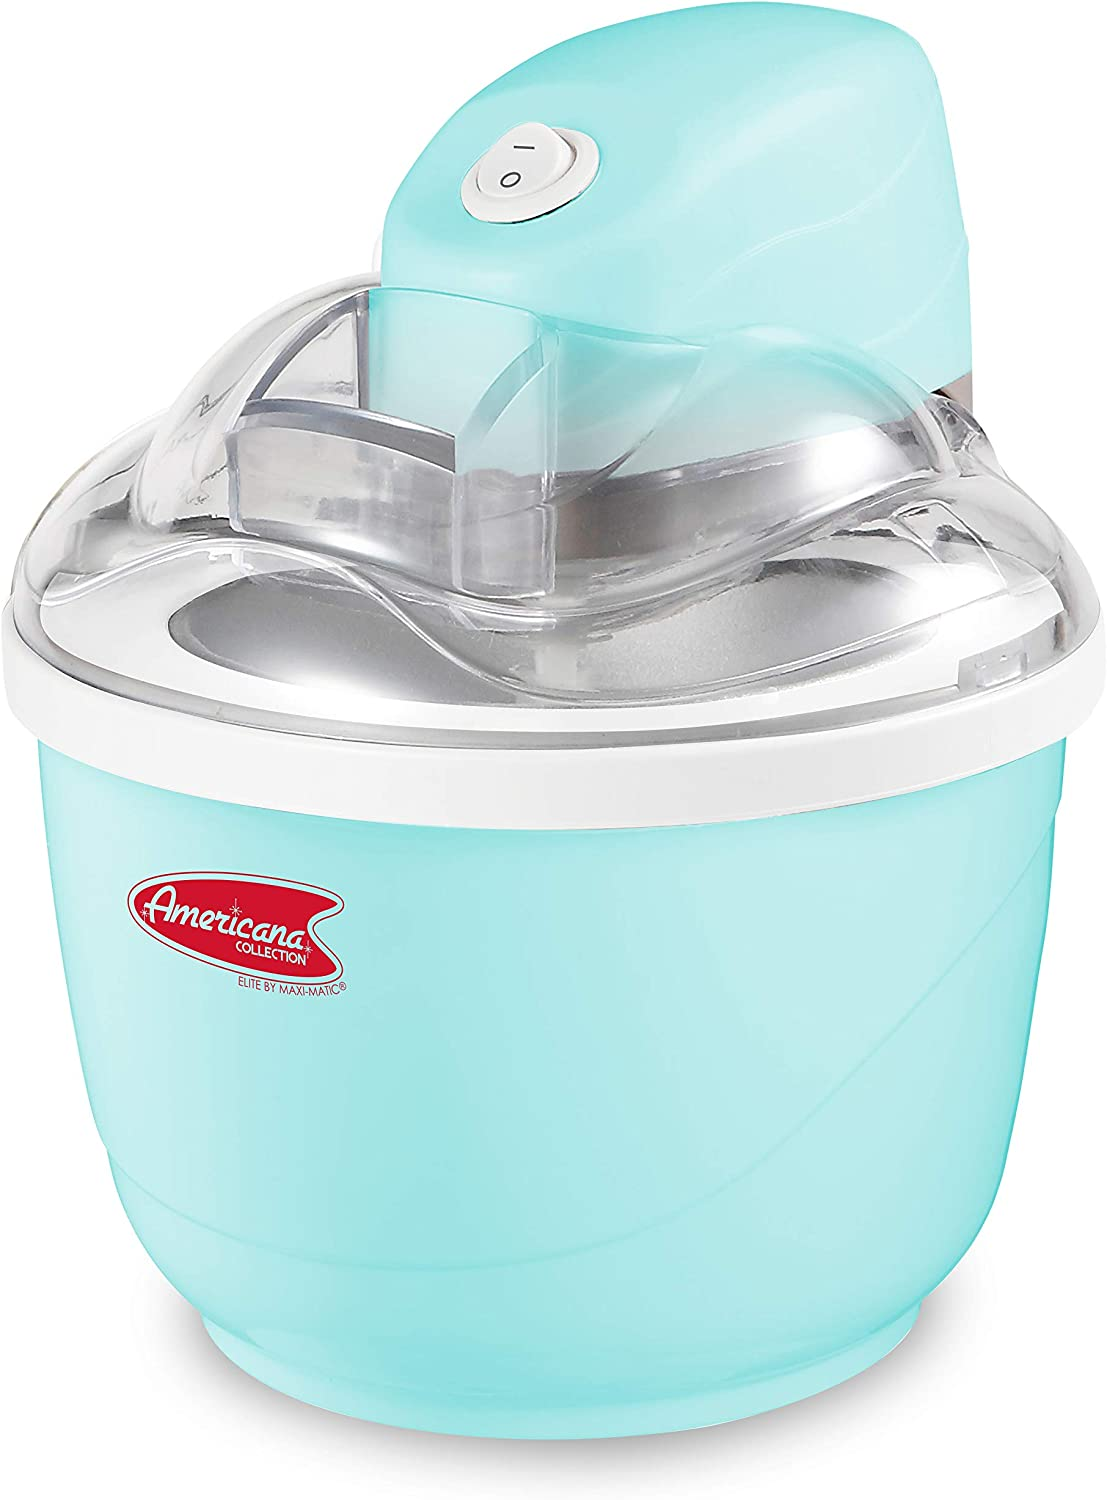 Maxi-Matic EIM-520, Automatic Easy Homemade Electric Maker, Ingredient Chute, On/Off Switch, No Salt Needed, Creamy Ice Cream, Gelato, Frozen Yogurt, or Sorbet, 1 Quart, Blue